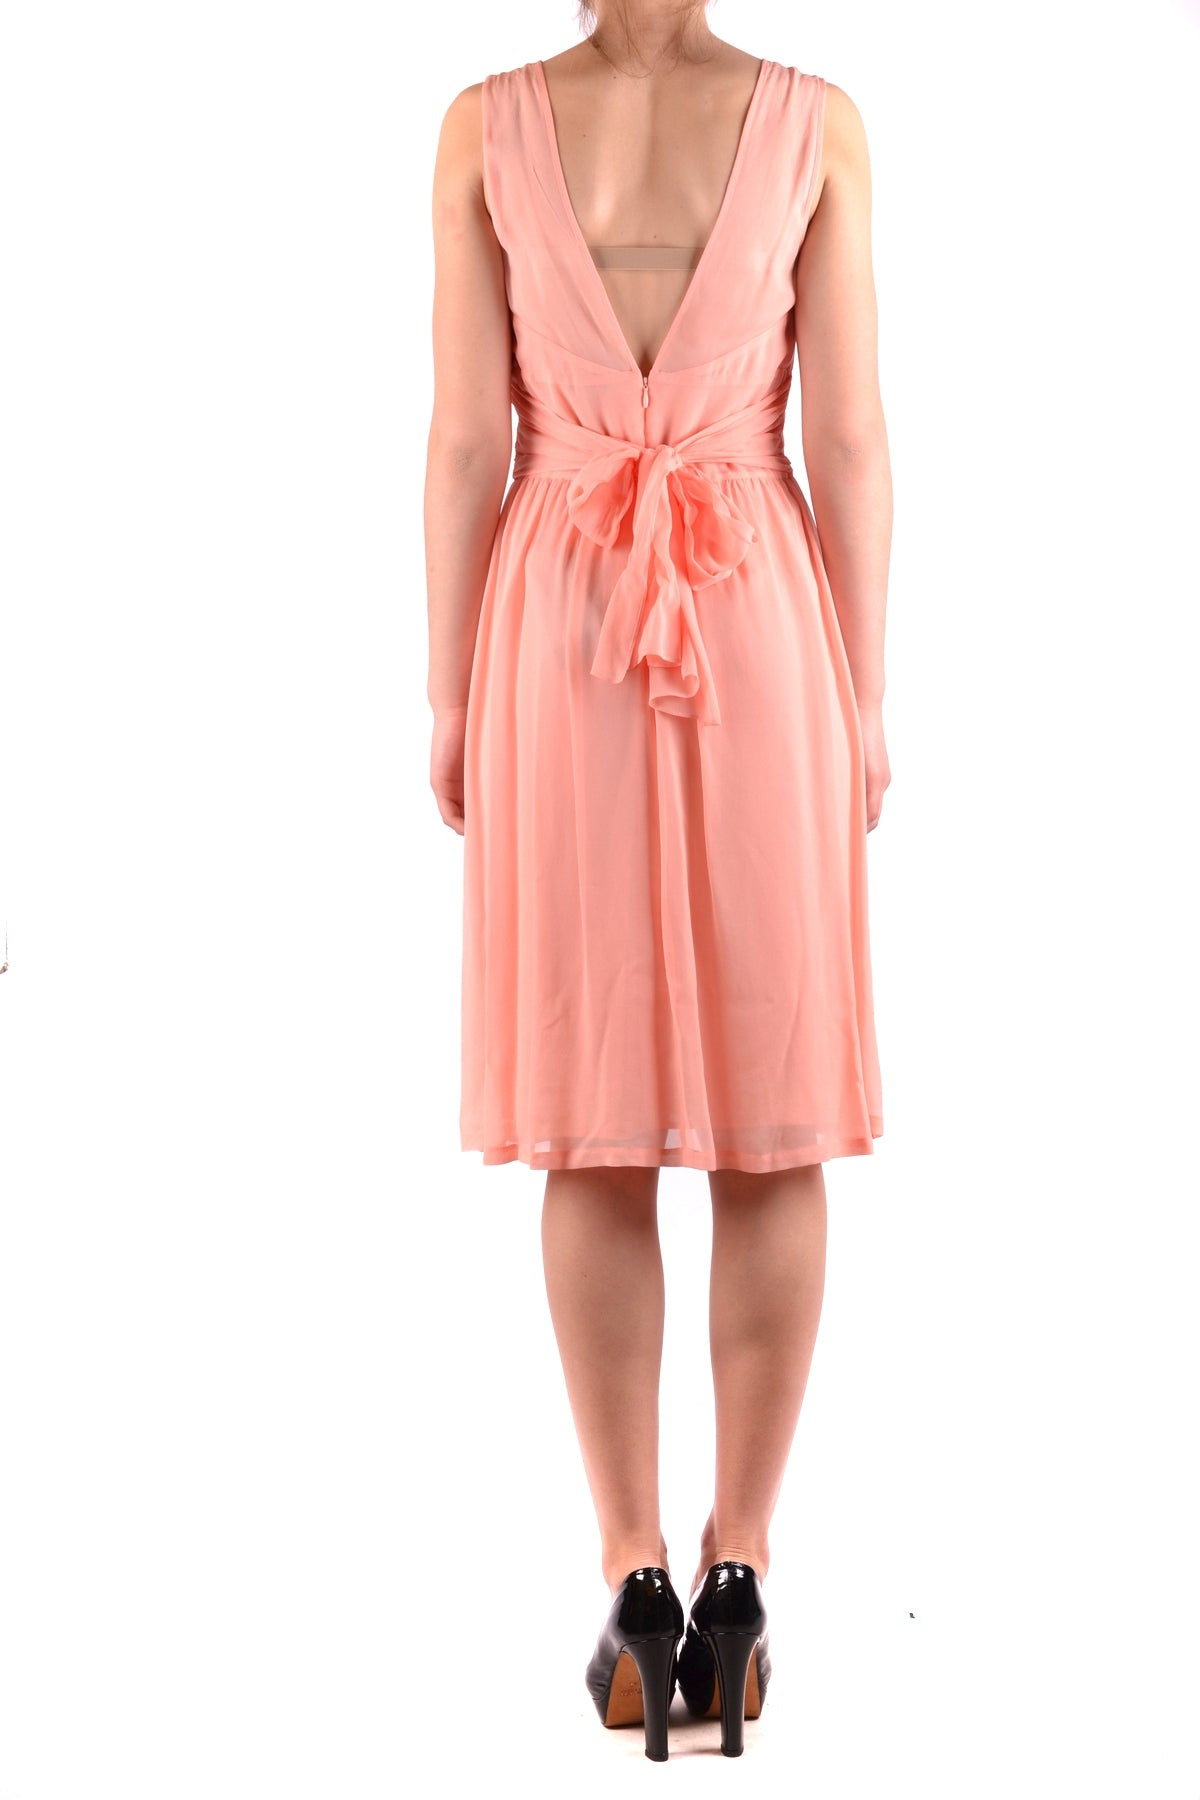 Dress Armani Jeans-Dress - WOMAN-Product Details Terms: New With LabelYear: 2017Main Color: CoralSeason: Spring / SummerMade In: ChinaSize: ItGender: WomanClothing Type: TaglieurComposition: Viscose 100%-Keyomi-Sook